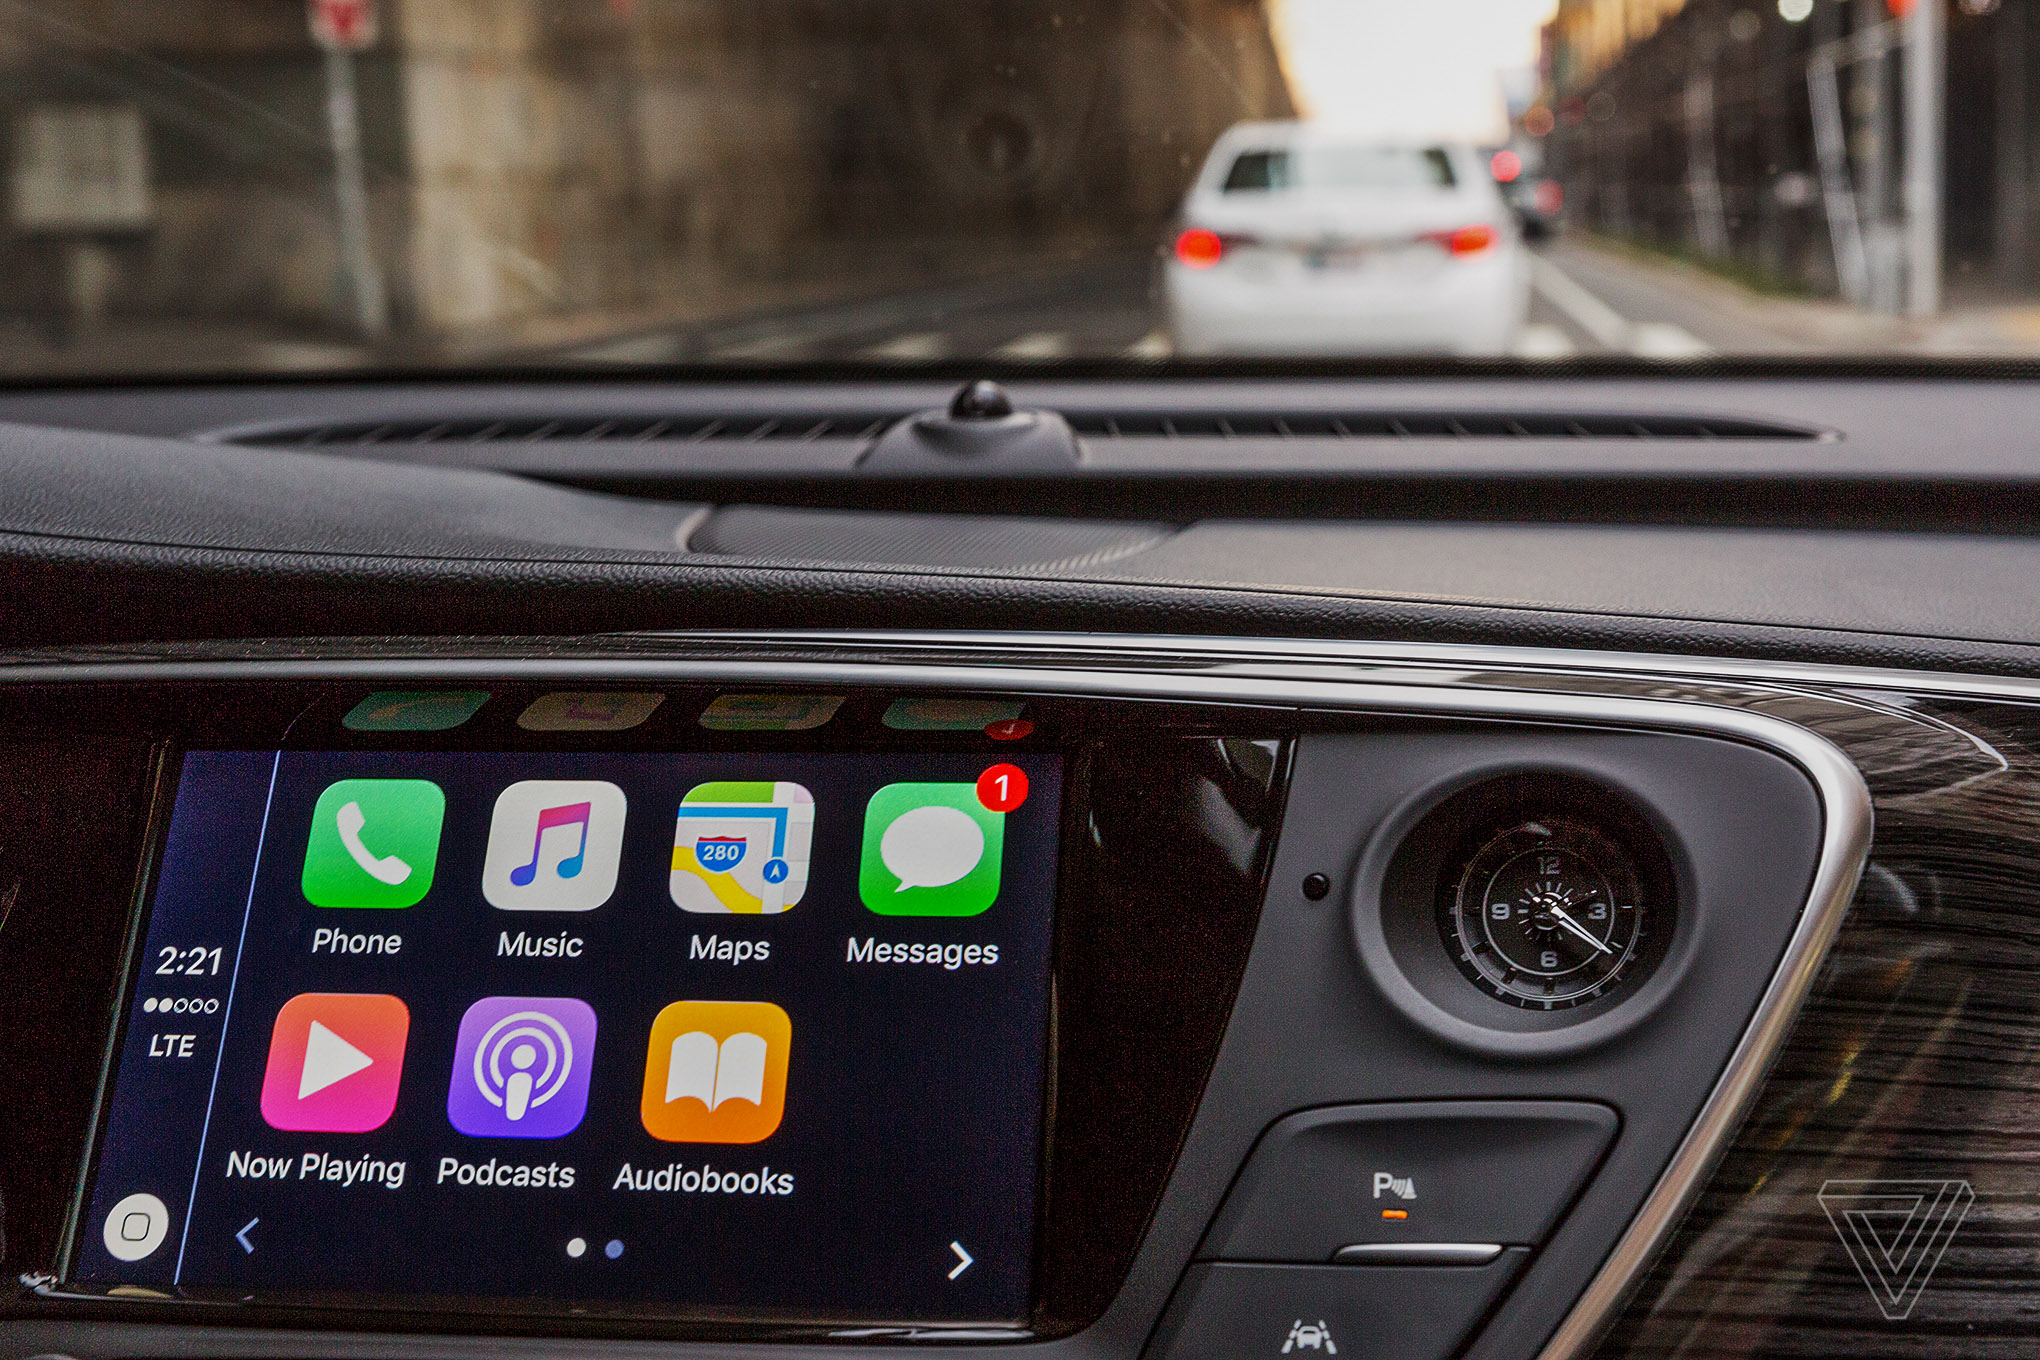 Why carmakers want to keep Apple and Google at arm's length - The Verge